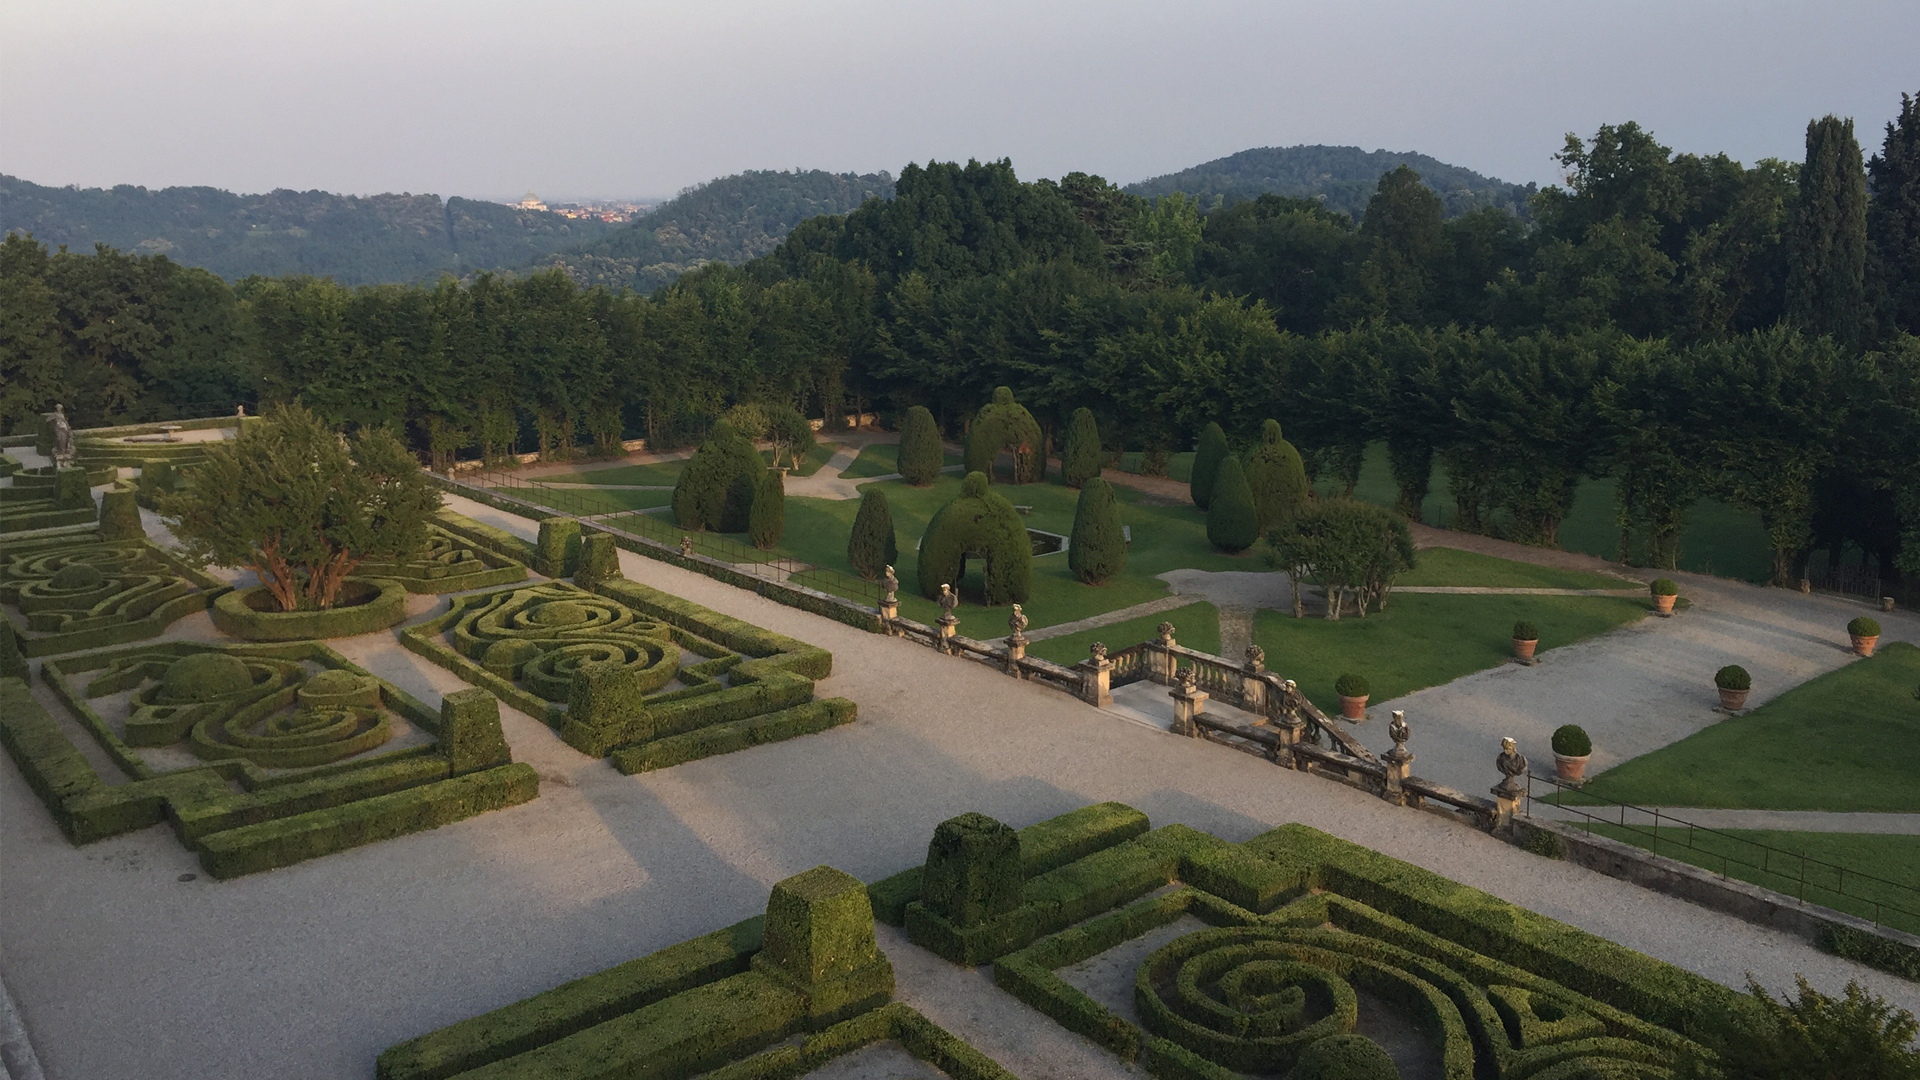 Villa Orsini Colonna di Imbersago Level Office Landscape wedding 2